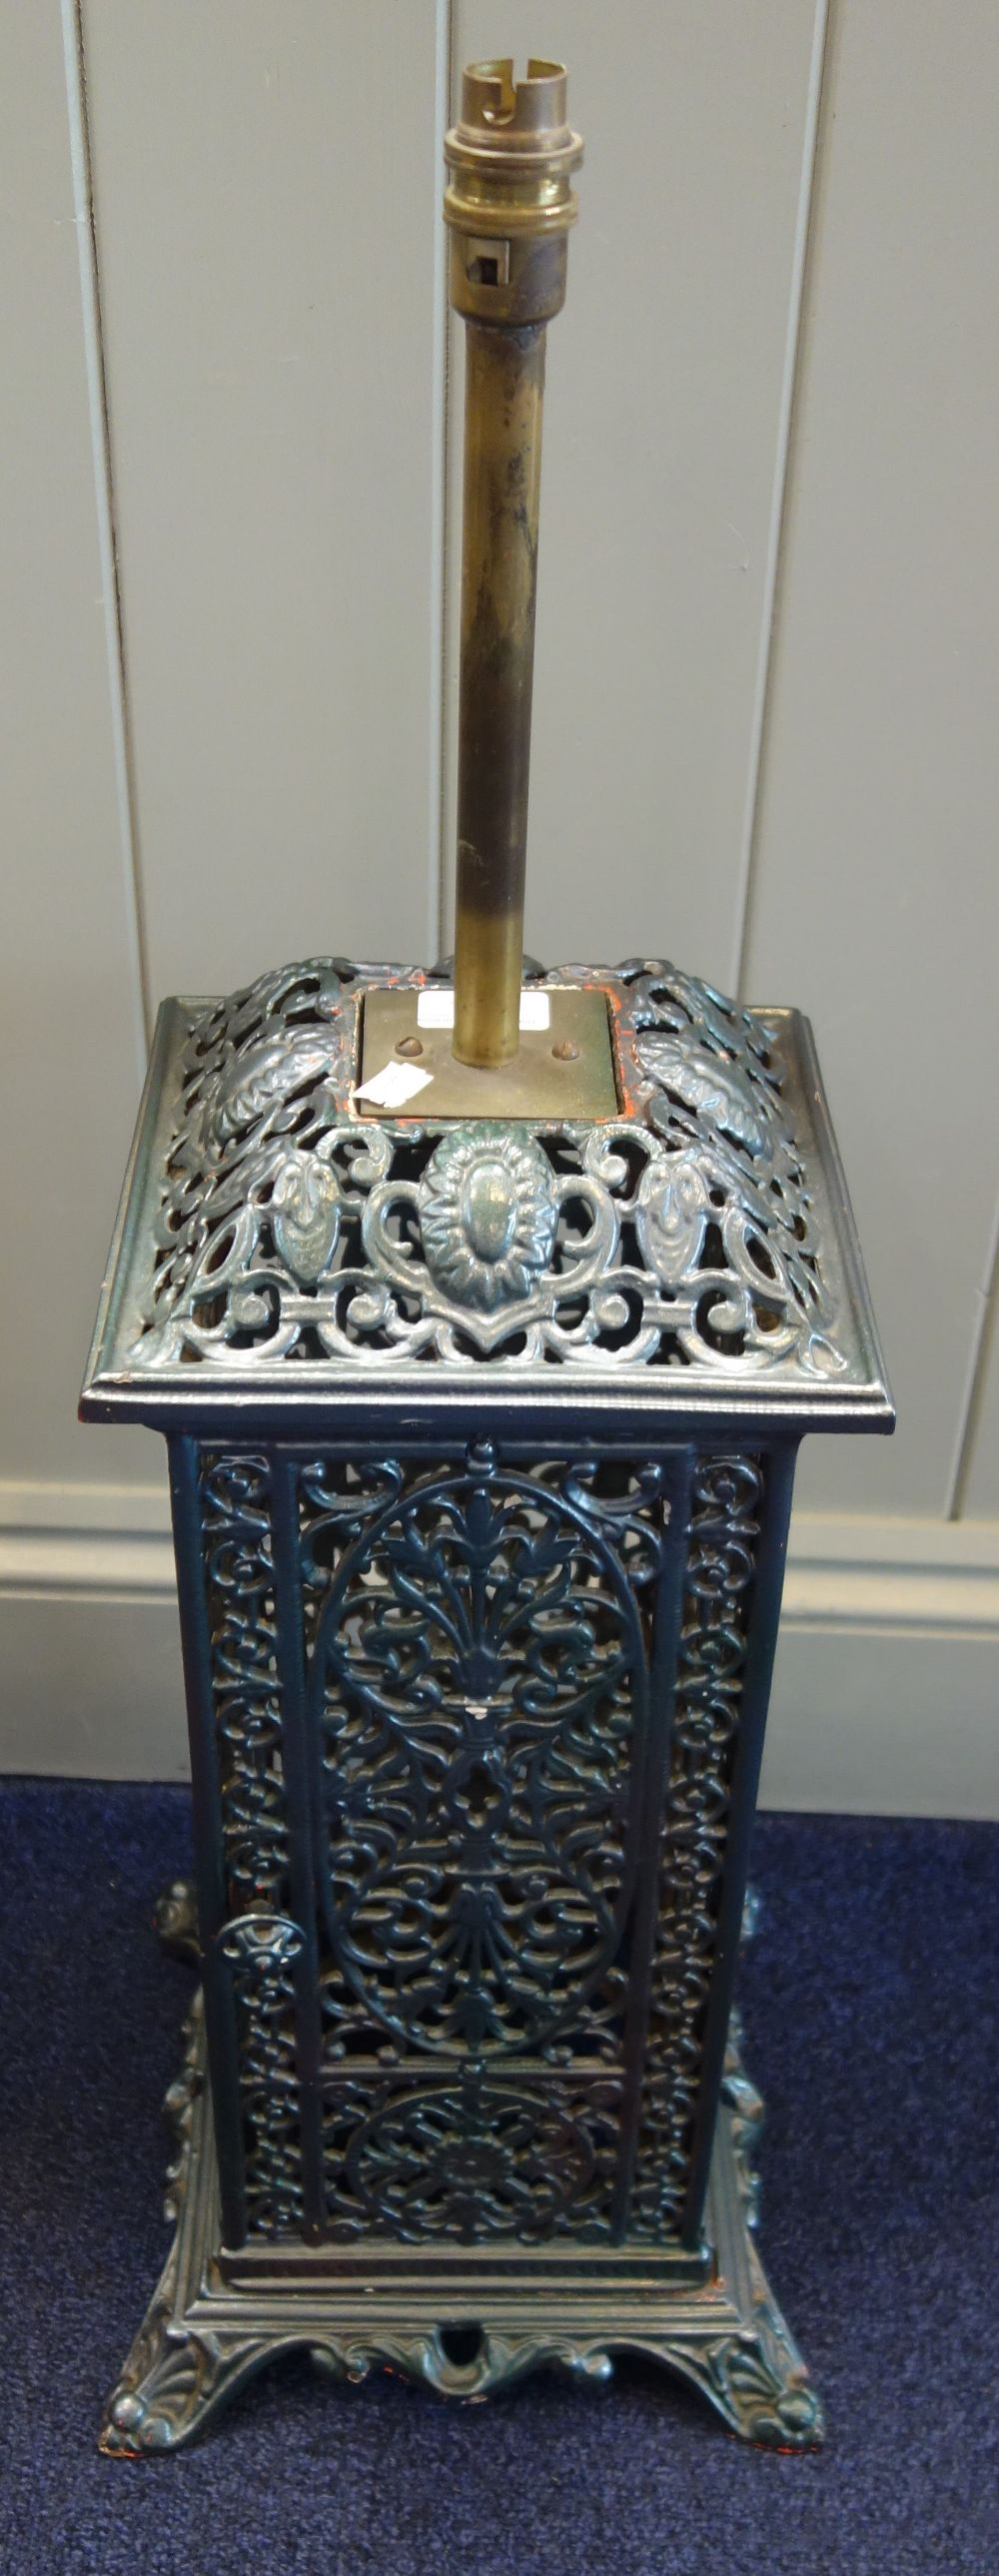 Lot 155 - A VICTORIAN CAST IRON CONSERVATORY HEATER (converted to a lamp)